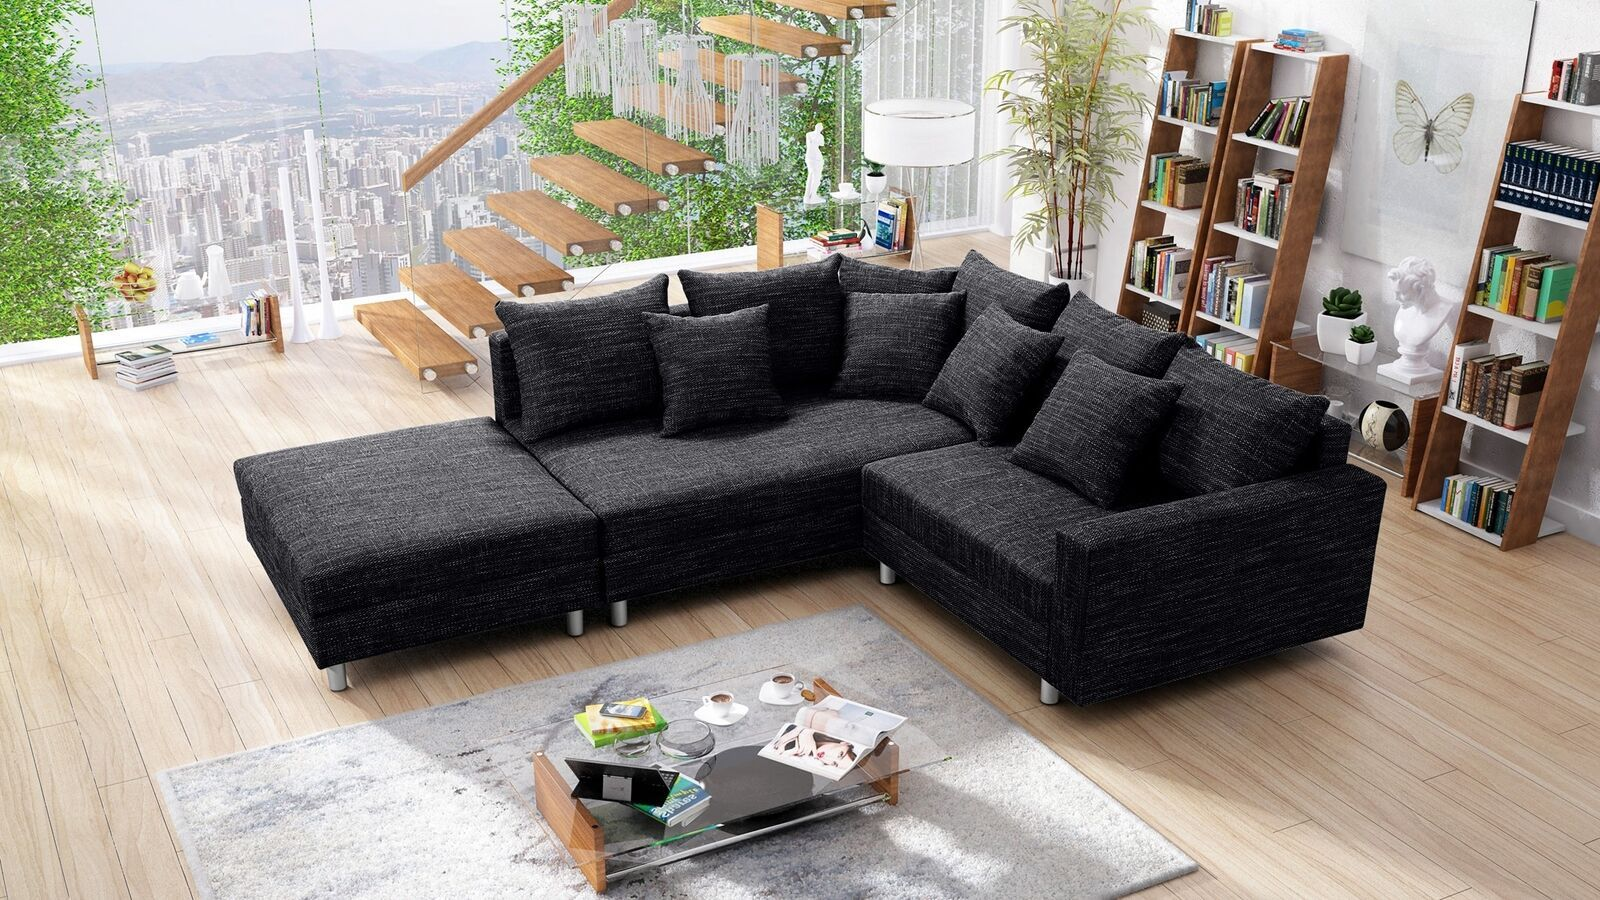 Modernes Sofa Couch Ecksofa Eckcouch In Gewebestoff Schwarz Mit Hocker Minsk L Sofas Sofas Outdoor Sectional Sofa Sectional Sofa Home Decor